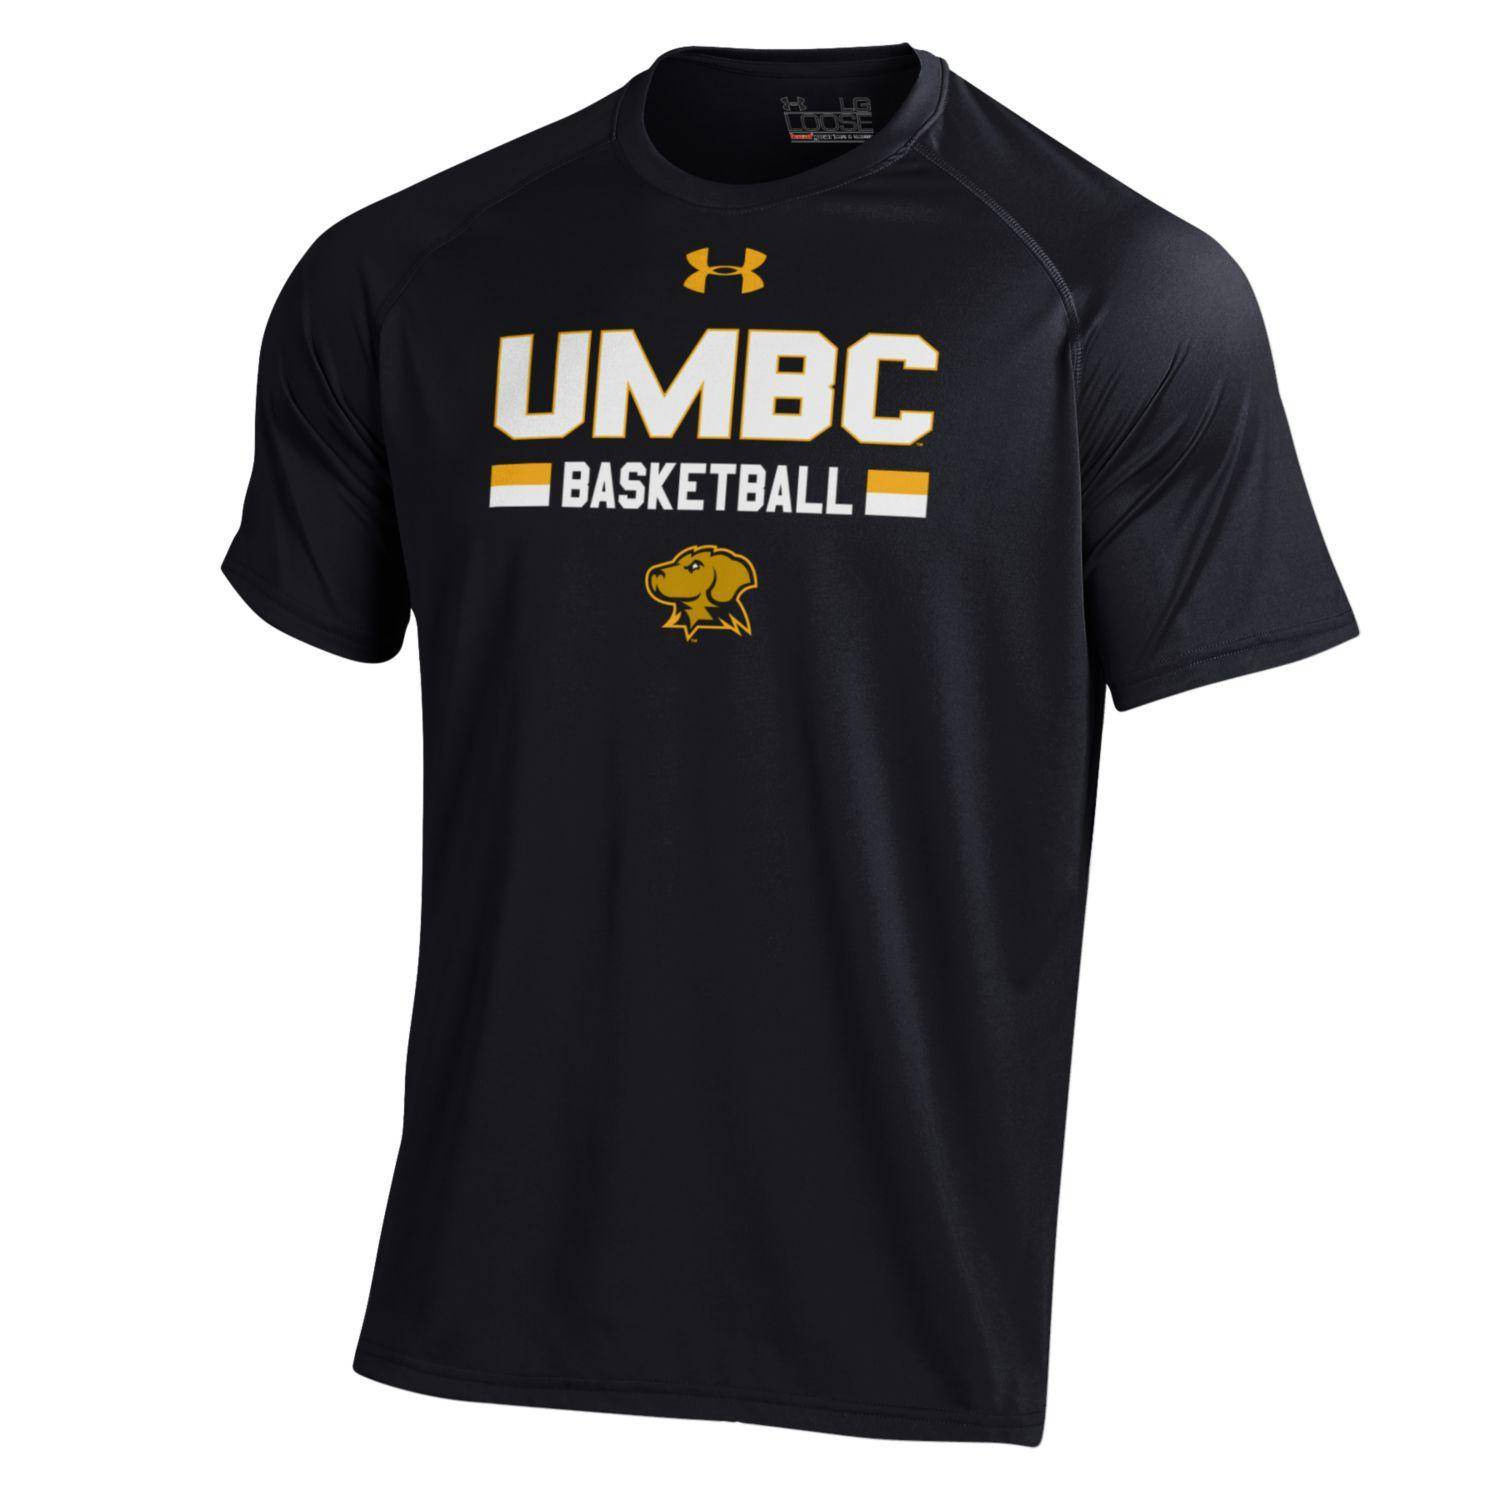 Image For BASKETBALL UNDER ARMOUR UMBC NUTECH T-SHIRT